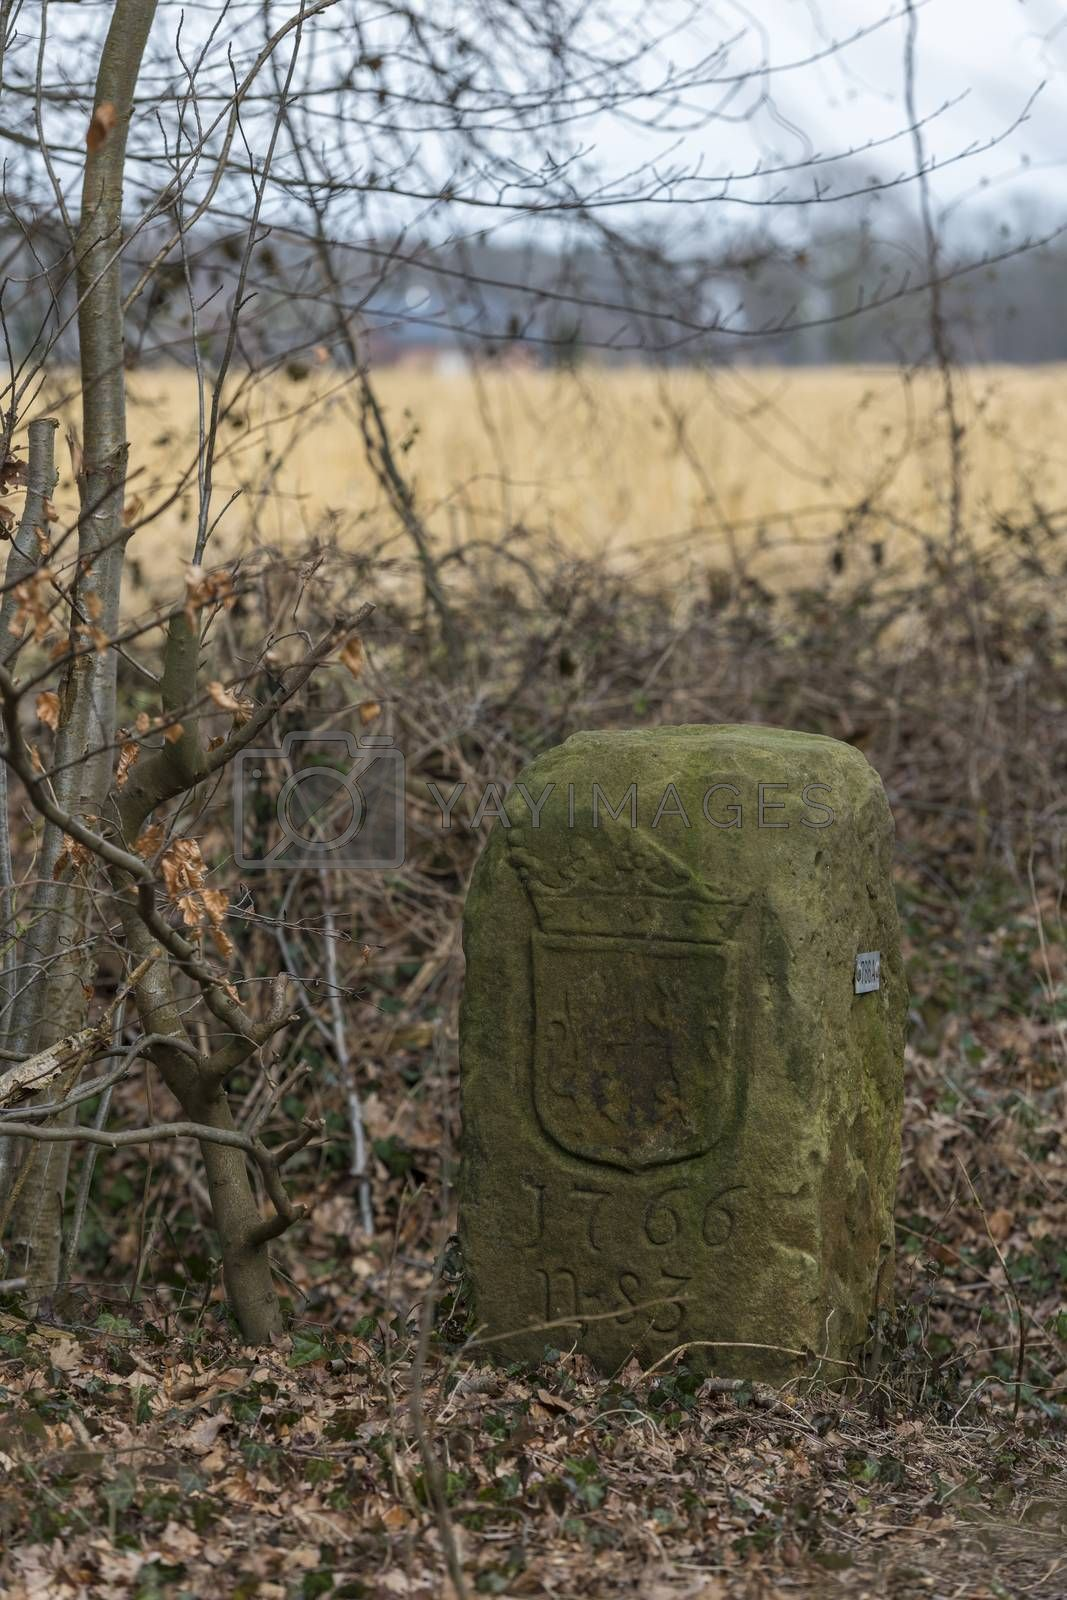 Historical boundary stone on the land border of Netherlands and Germany near the in Dutch called komiezenpaden paths in the past used by border guards and smugglers